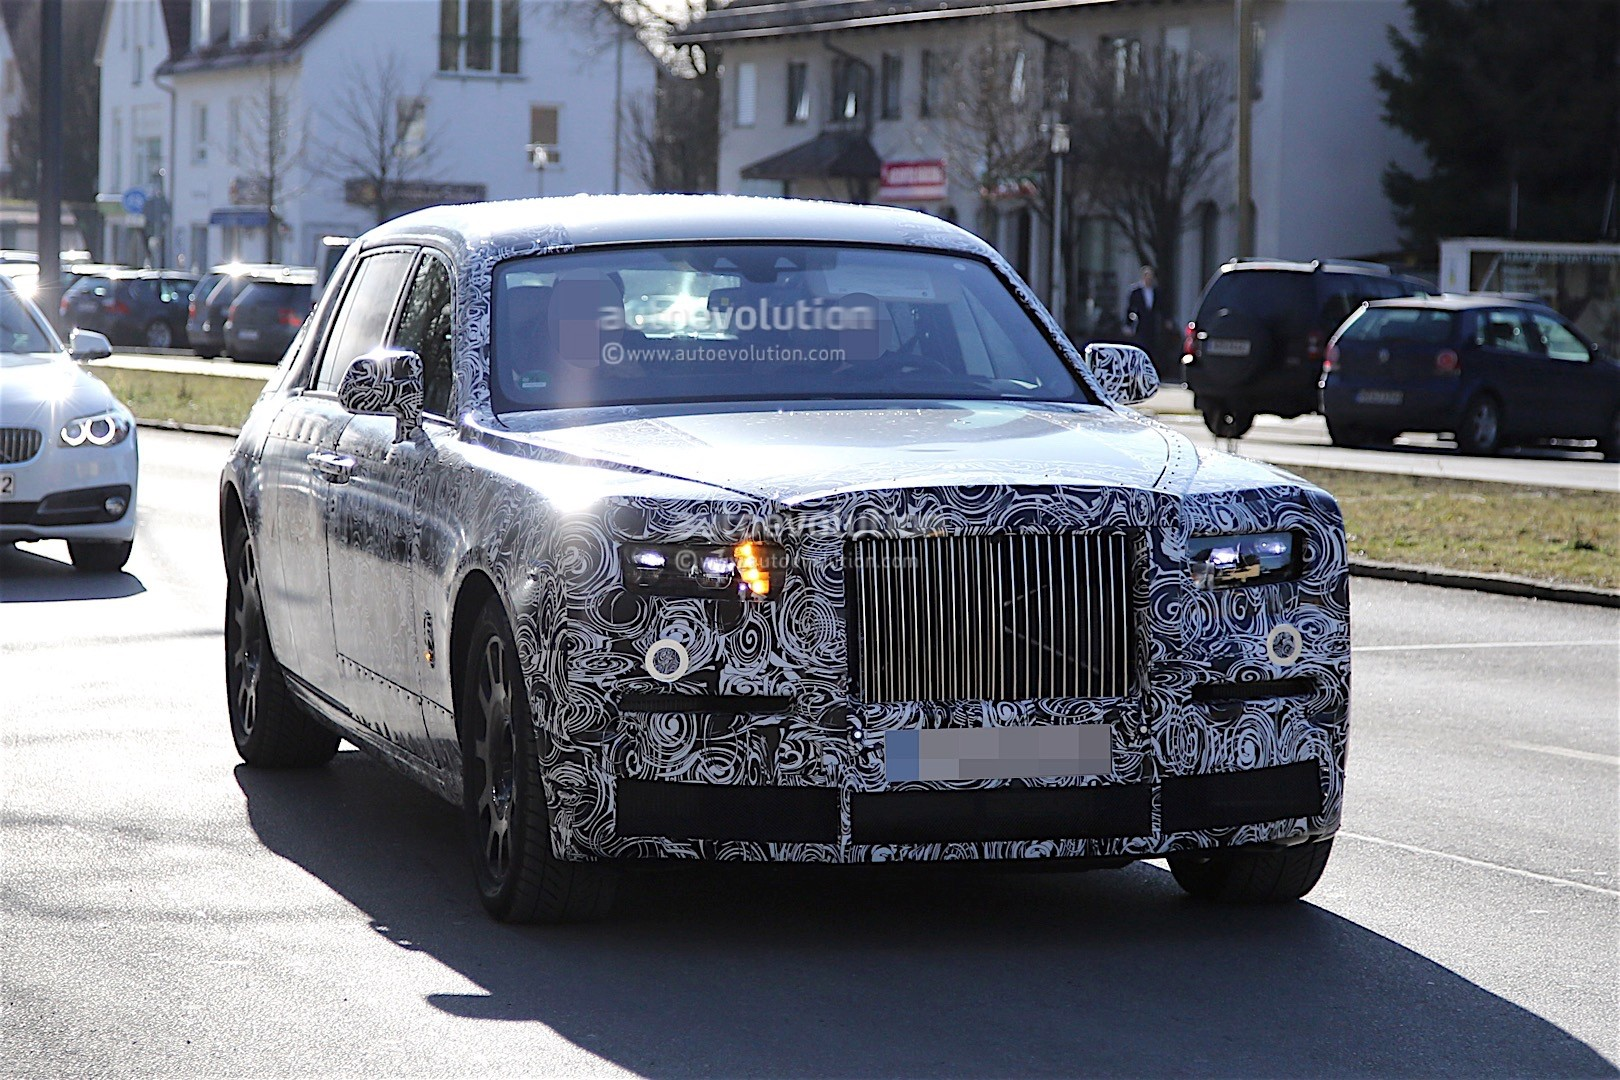 2018 Rolls-Royce Phantom Spied With No Visible Major